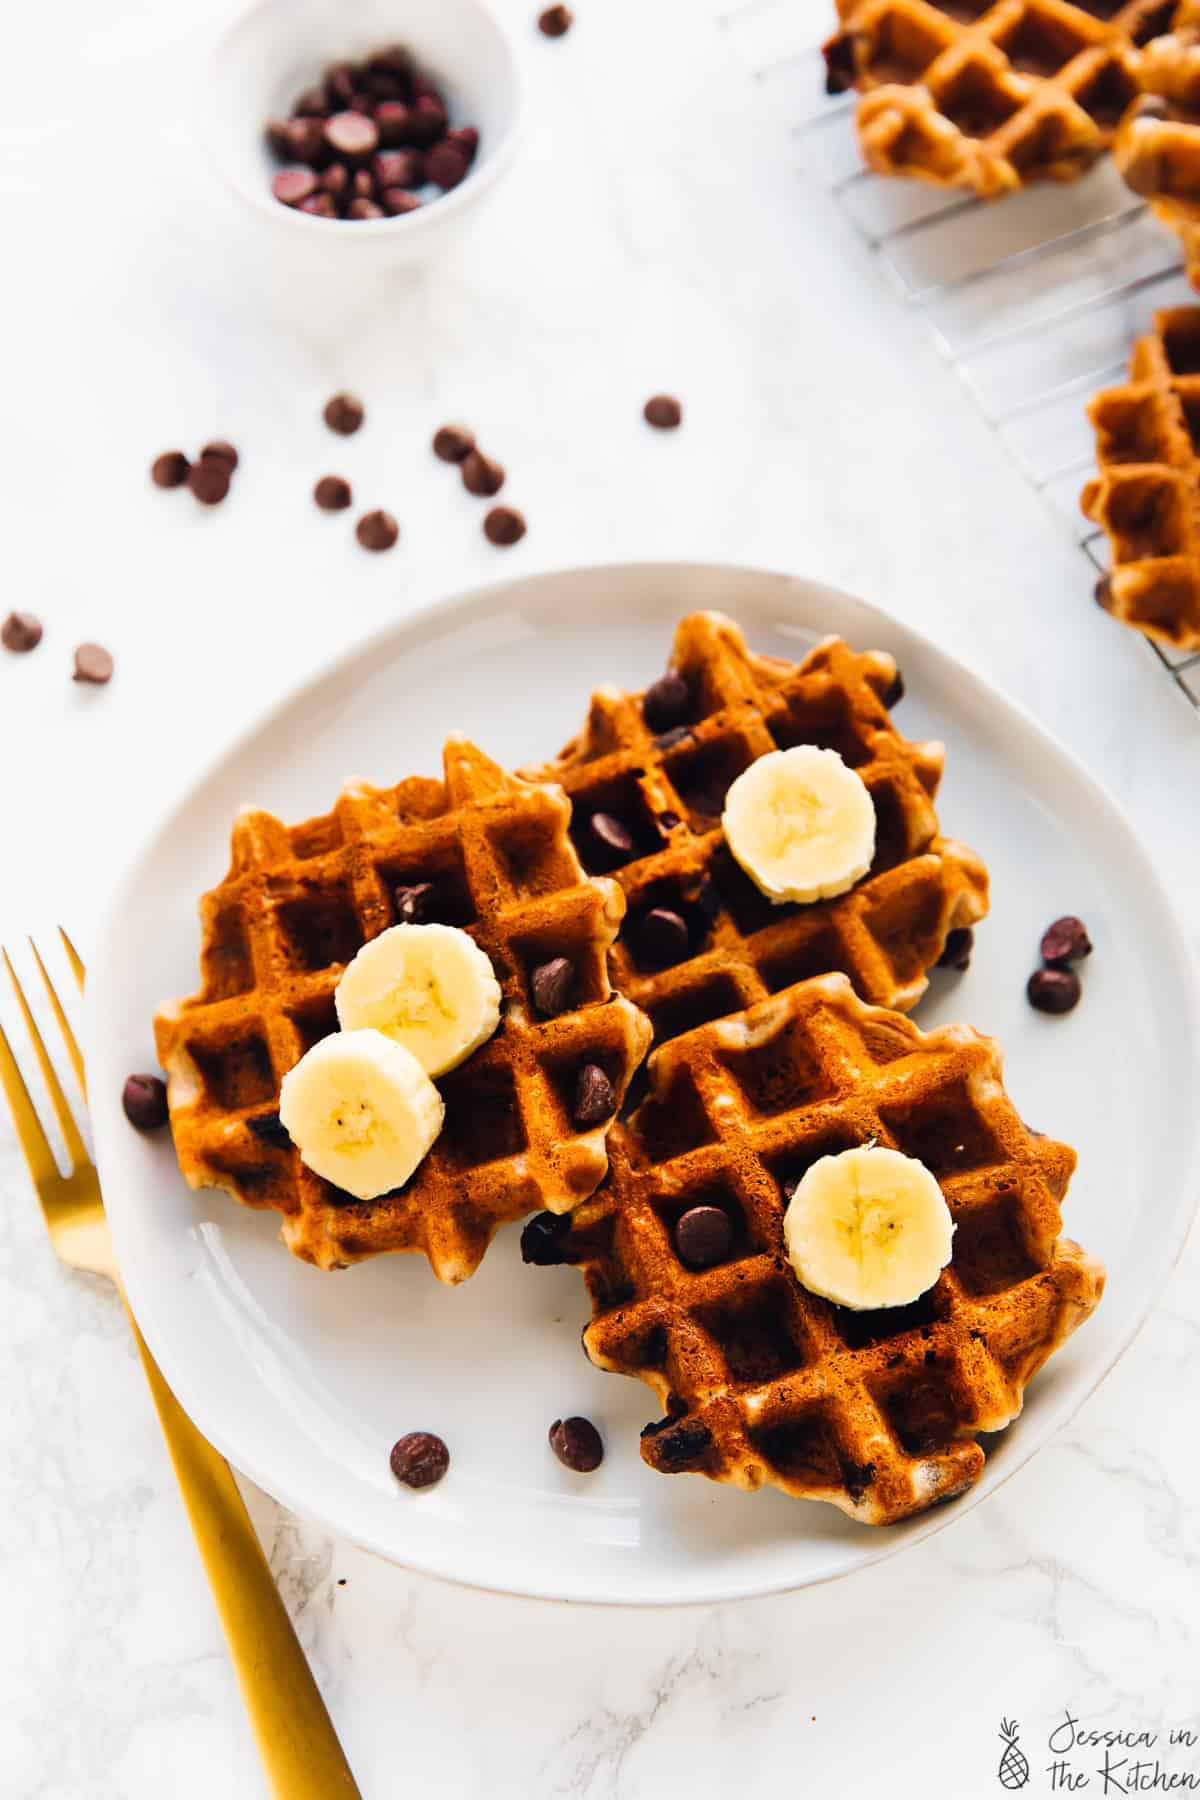 Overhead view of three banana bread waffles on a plate with a gold fork on the side.